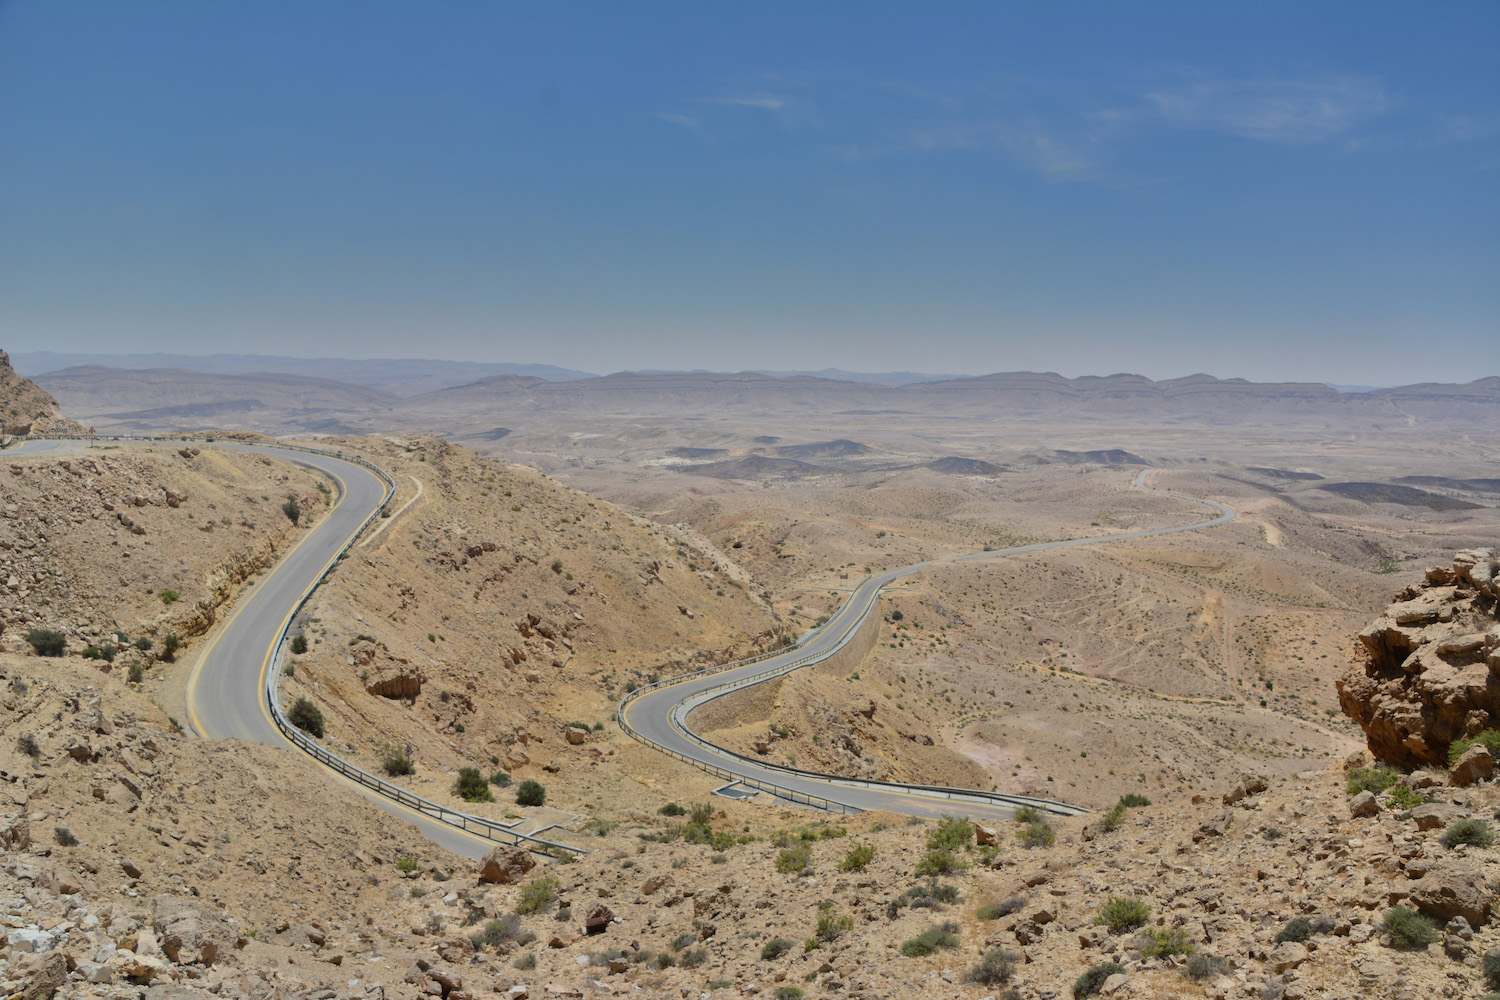 Winding road in Negev Desert